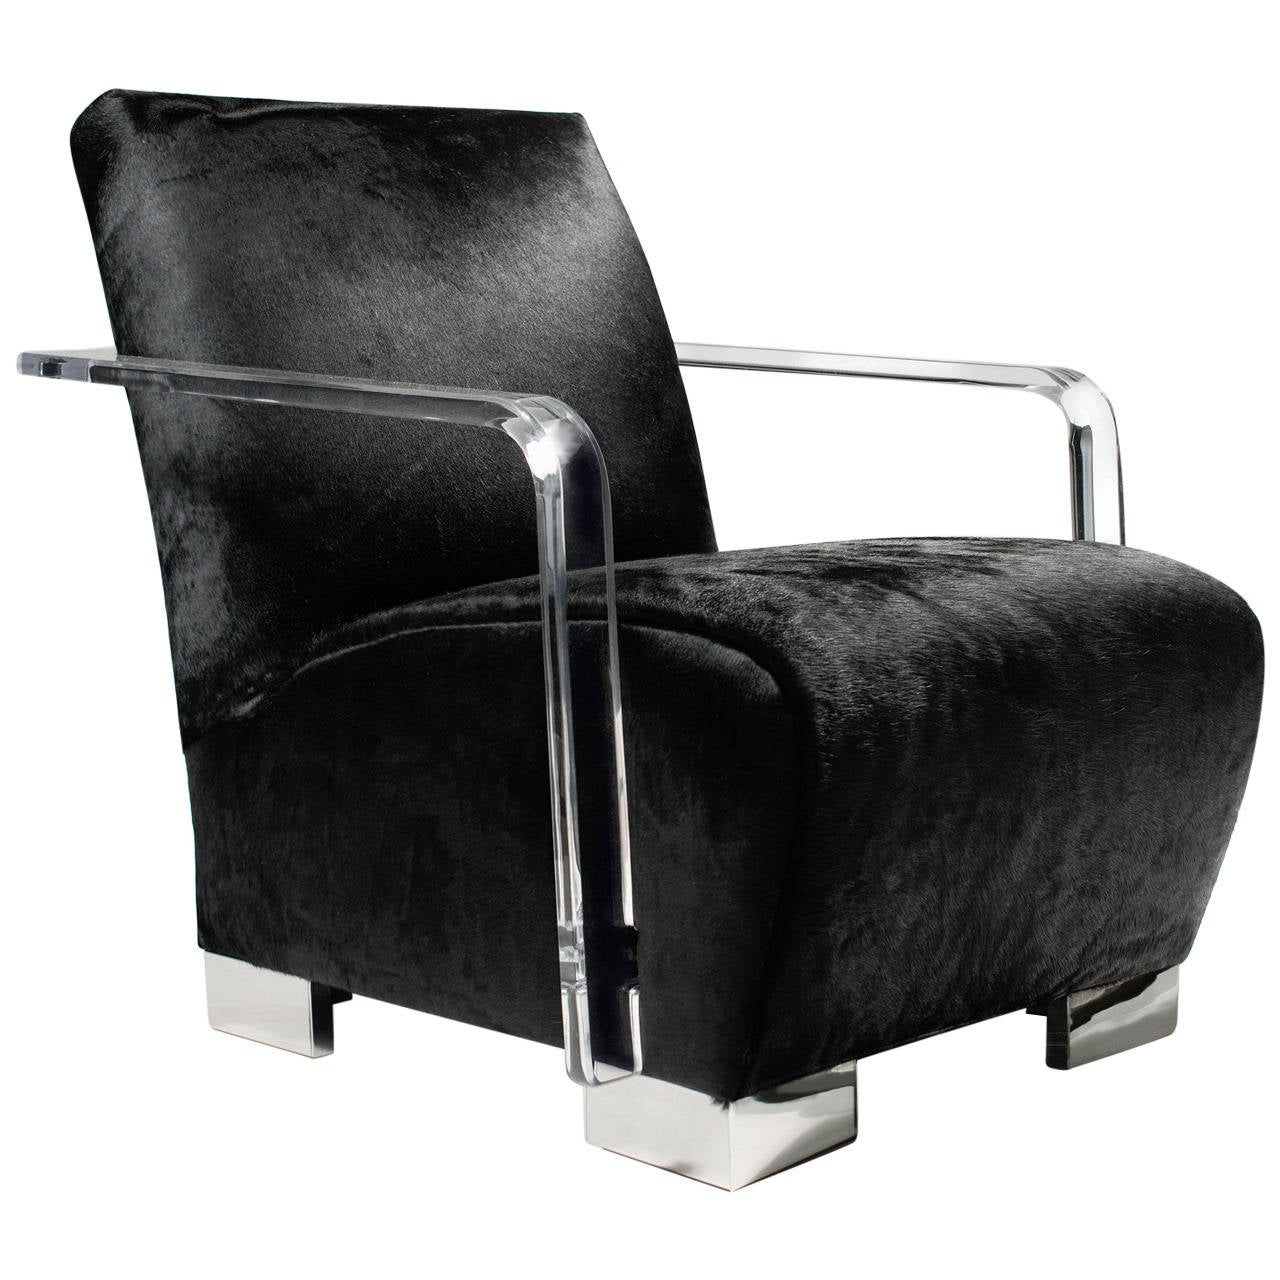 black and white cowhide chair spandex covers rental solid helena with acrylic armrests at